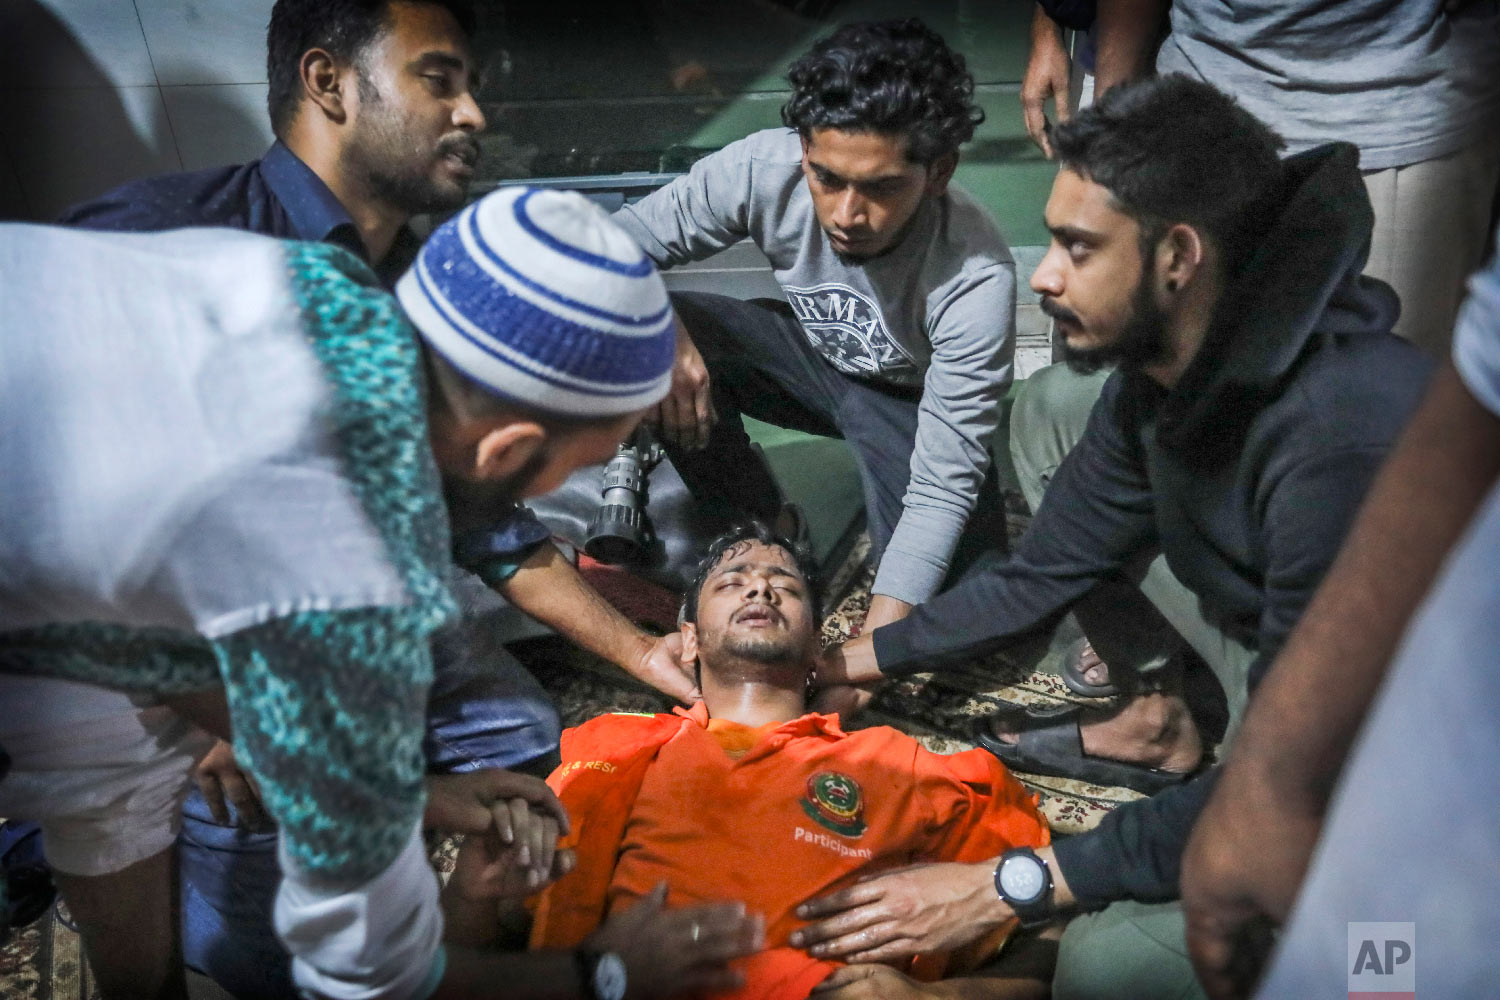 Locals help a Bangladeshi firefighter who lost consciousness briefly while trying to douse flames of a smoldering fire in a building in Dhaka, Bangladesh, Thursday, Feb. 21, 2019. (AP Photo/Zabed Hasnain Chowdhury)